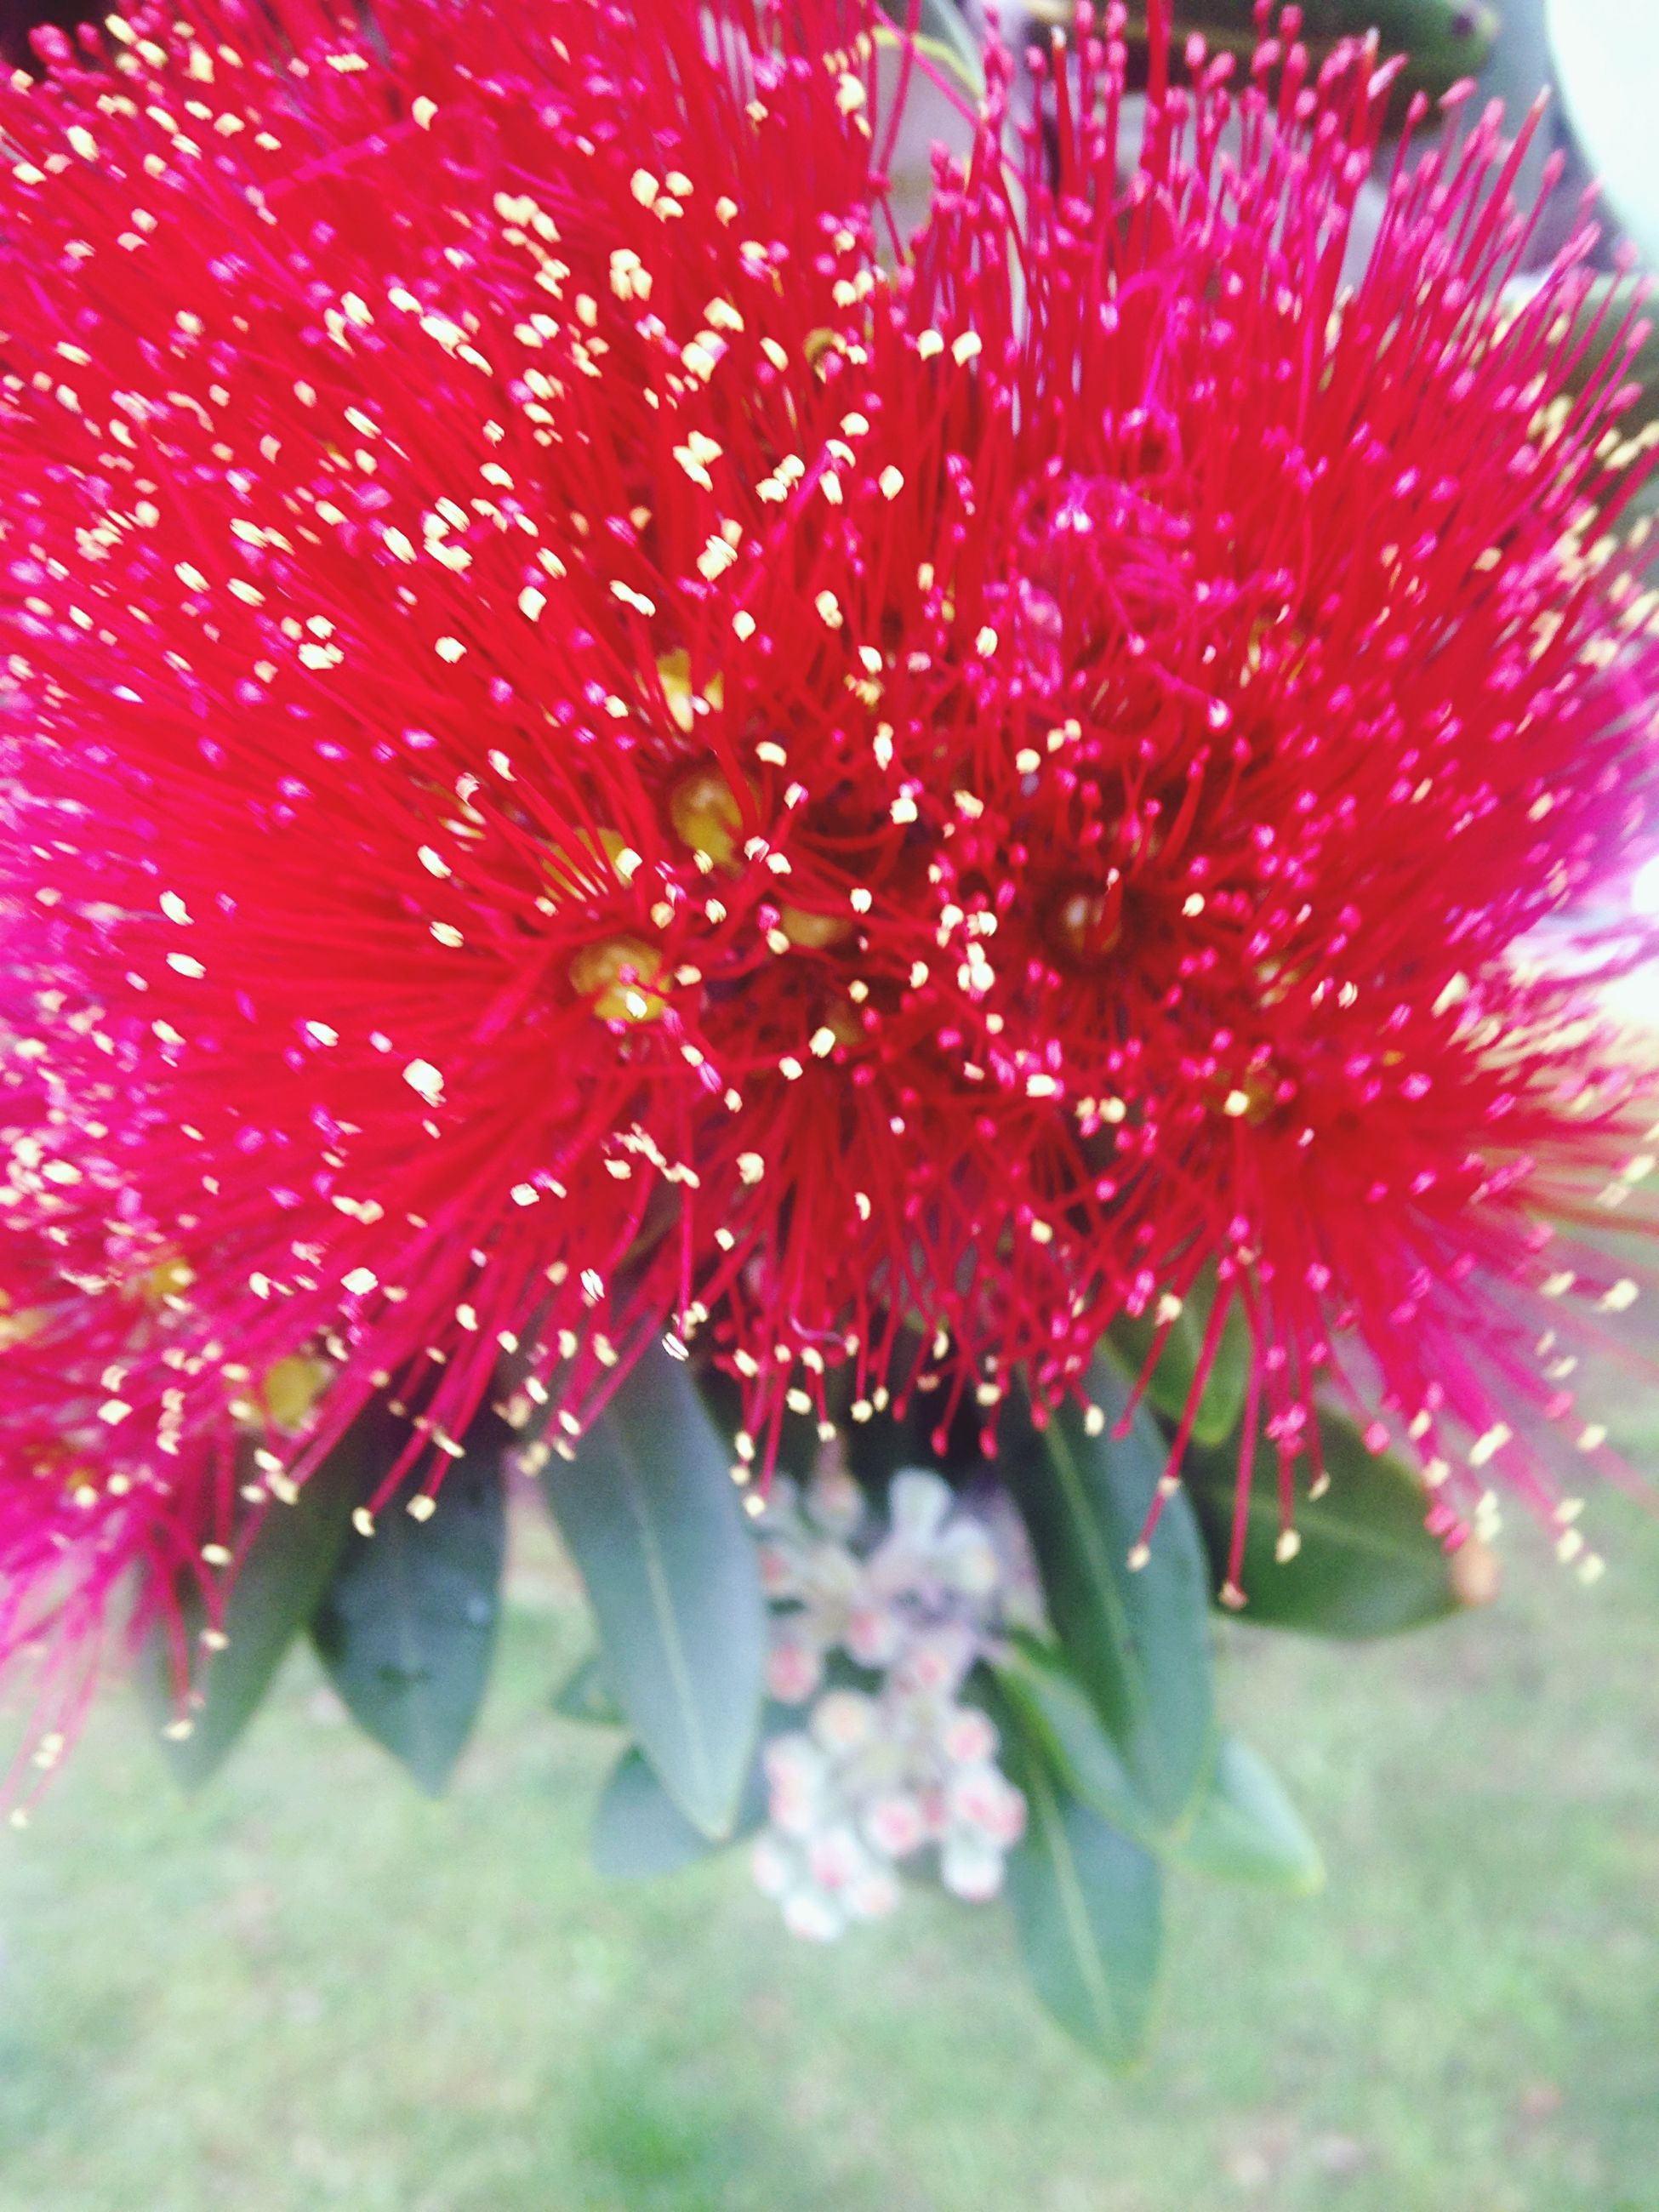 flower, freshness, red, petal, growth, fragility, flower head, beauty in nature, close-up, nature, pollen, pink color, blooming, stamen, plant, selective focus, in bloom, single flower, day, focus on foreground